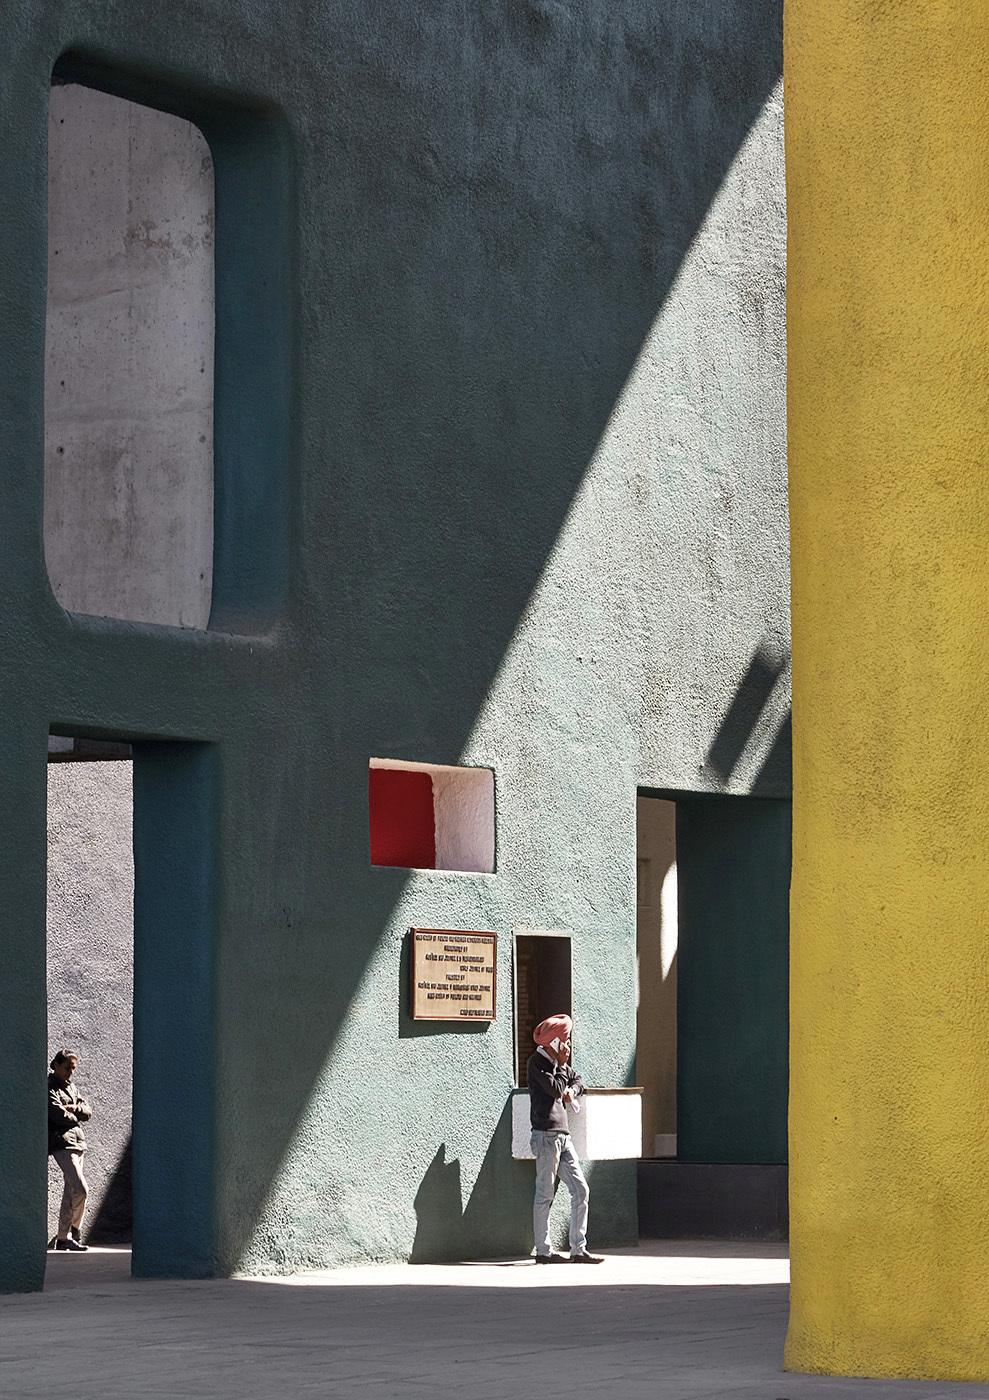 The Leaning Man is a scene taken outside the High Court designed by the Swiss Architect Le Corbusier in Chandigarh India.